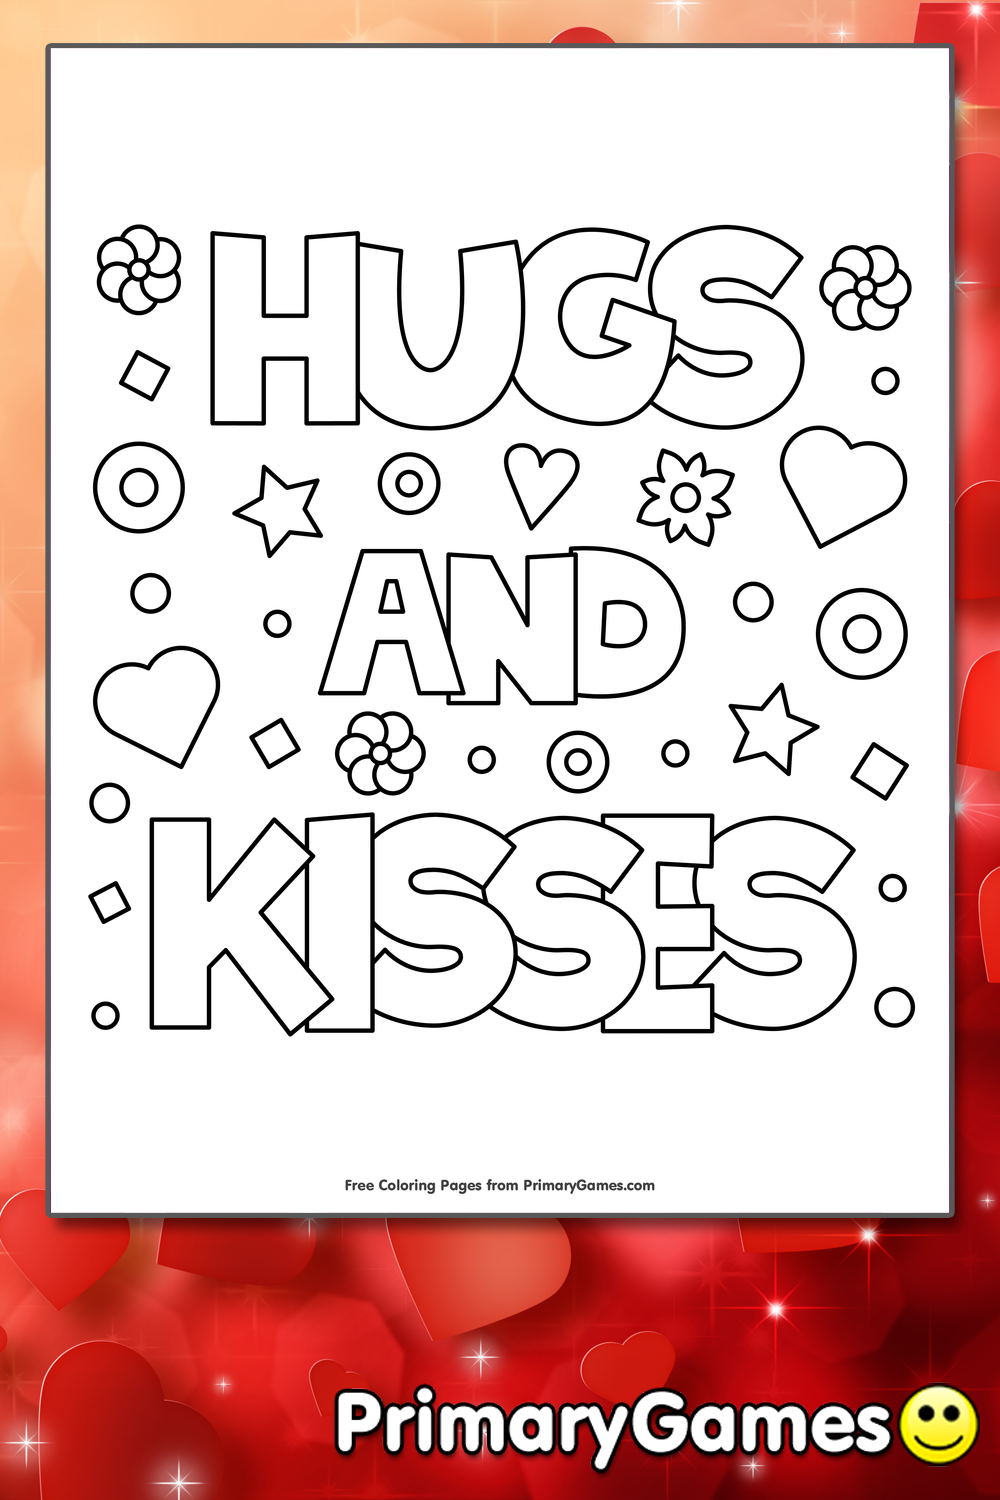 Hugs And Kisses Coloring Page Printable Valentine S Day